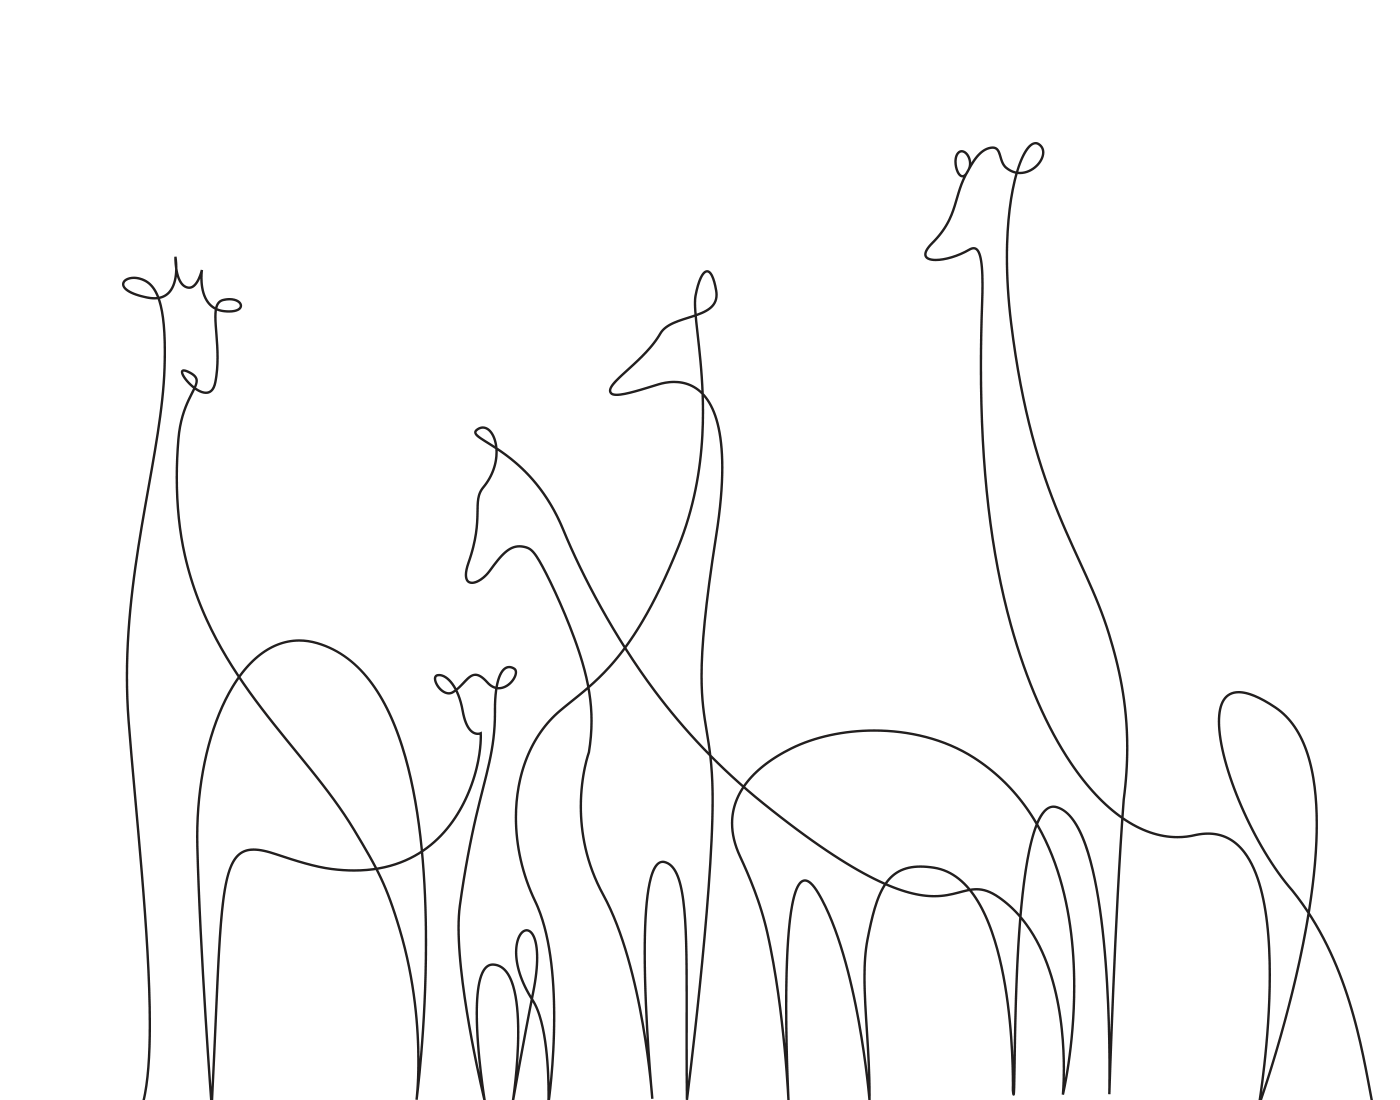 Minimal, Elegant One-Line Drawings Illustrate The Magnificence Of Wild Animals - DesignTAXI.com